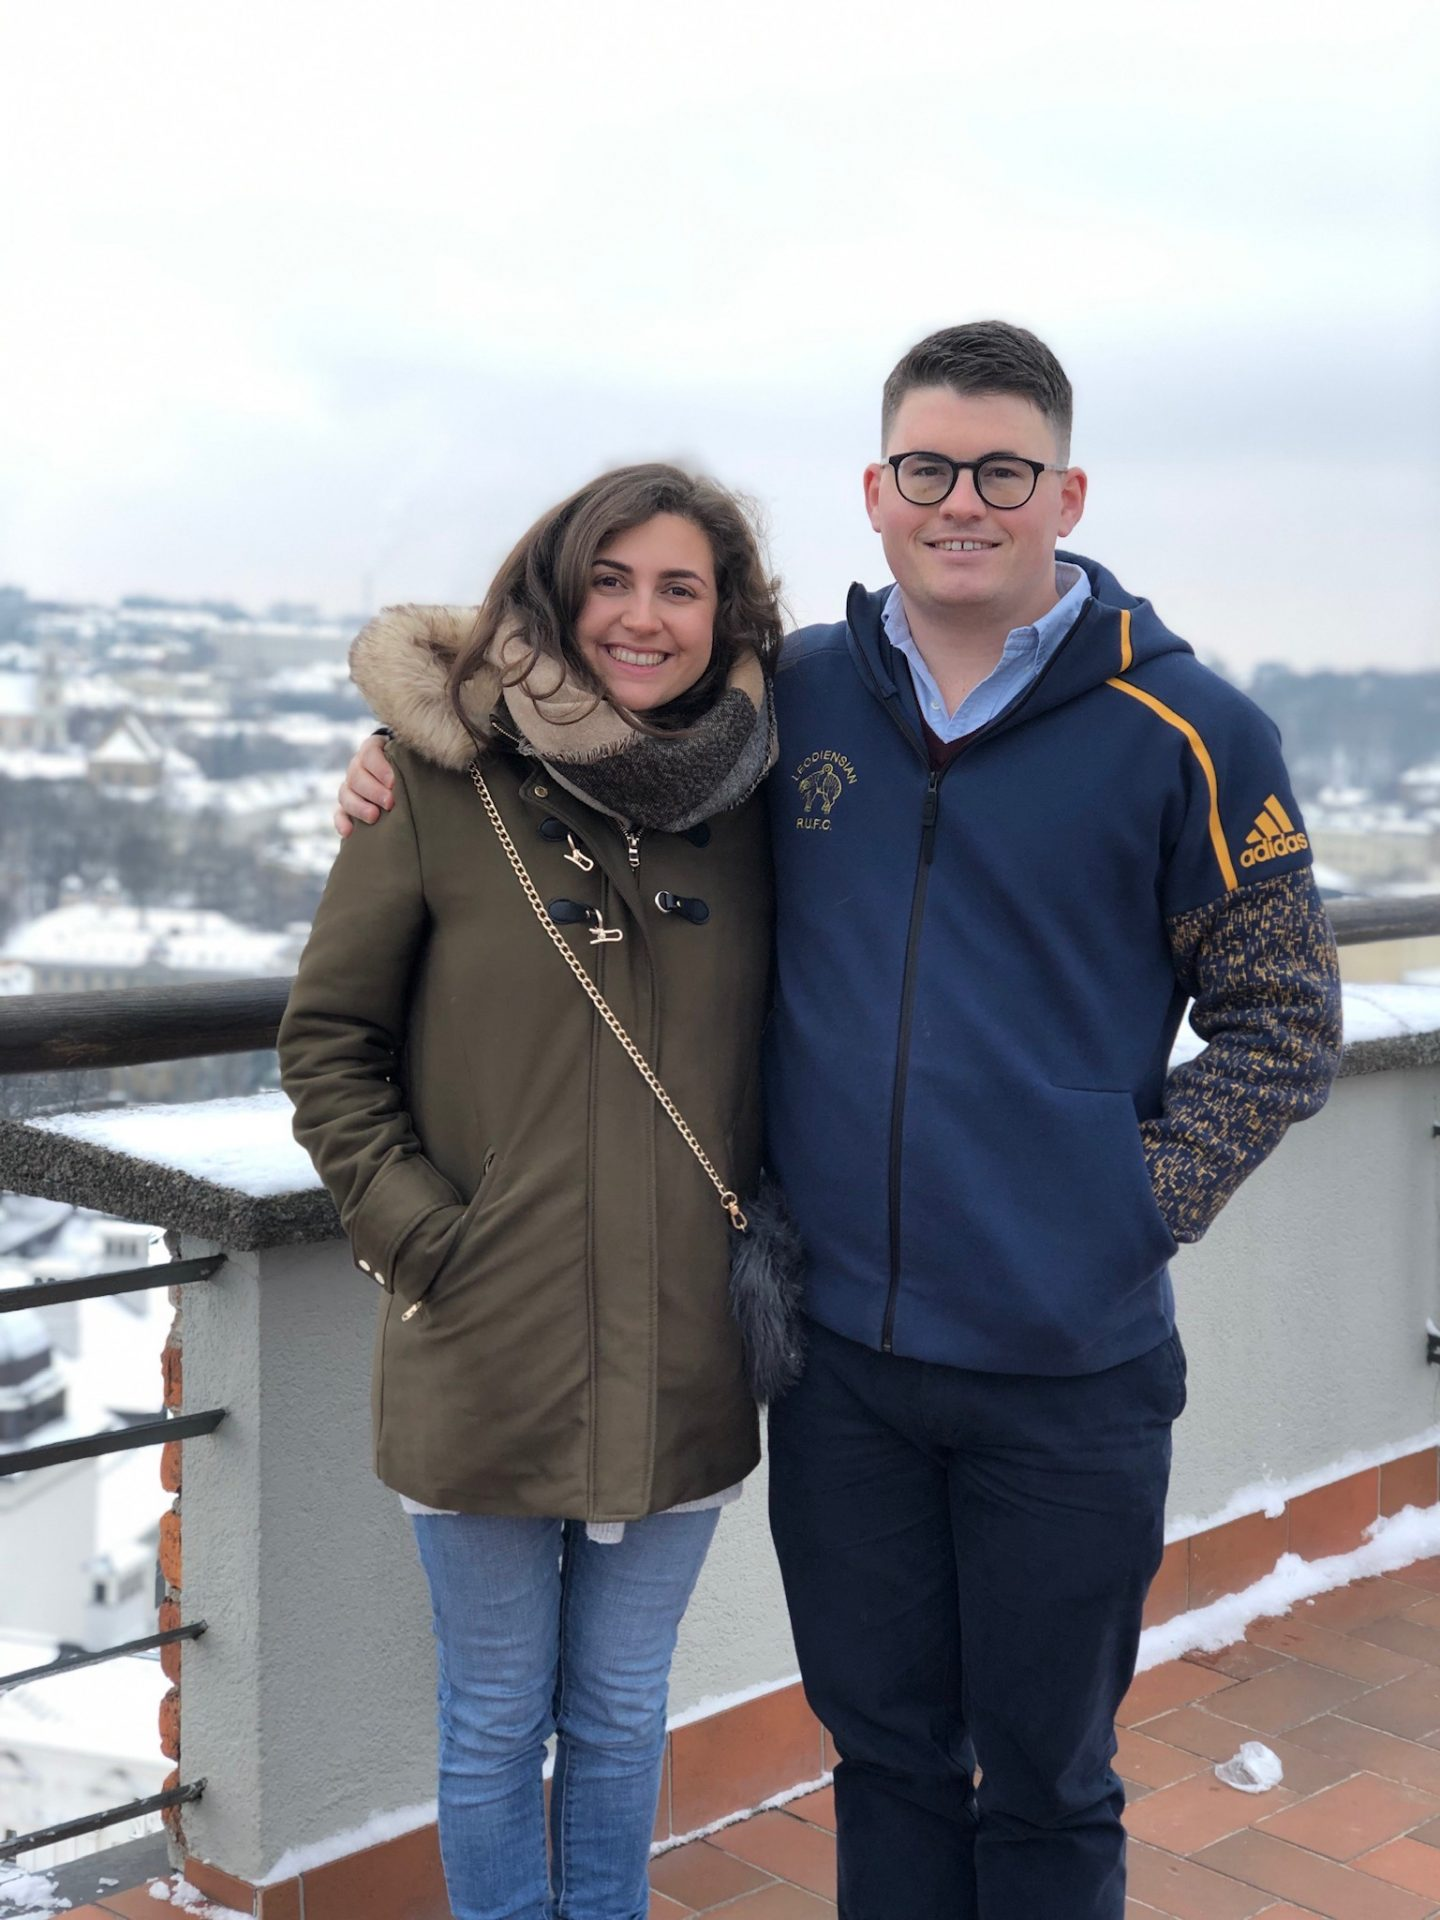 Nell and Billy stood on the observation deck of Gediminas' Tower, looking at the camera and smiling.